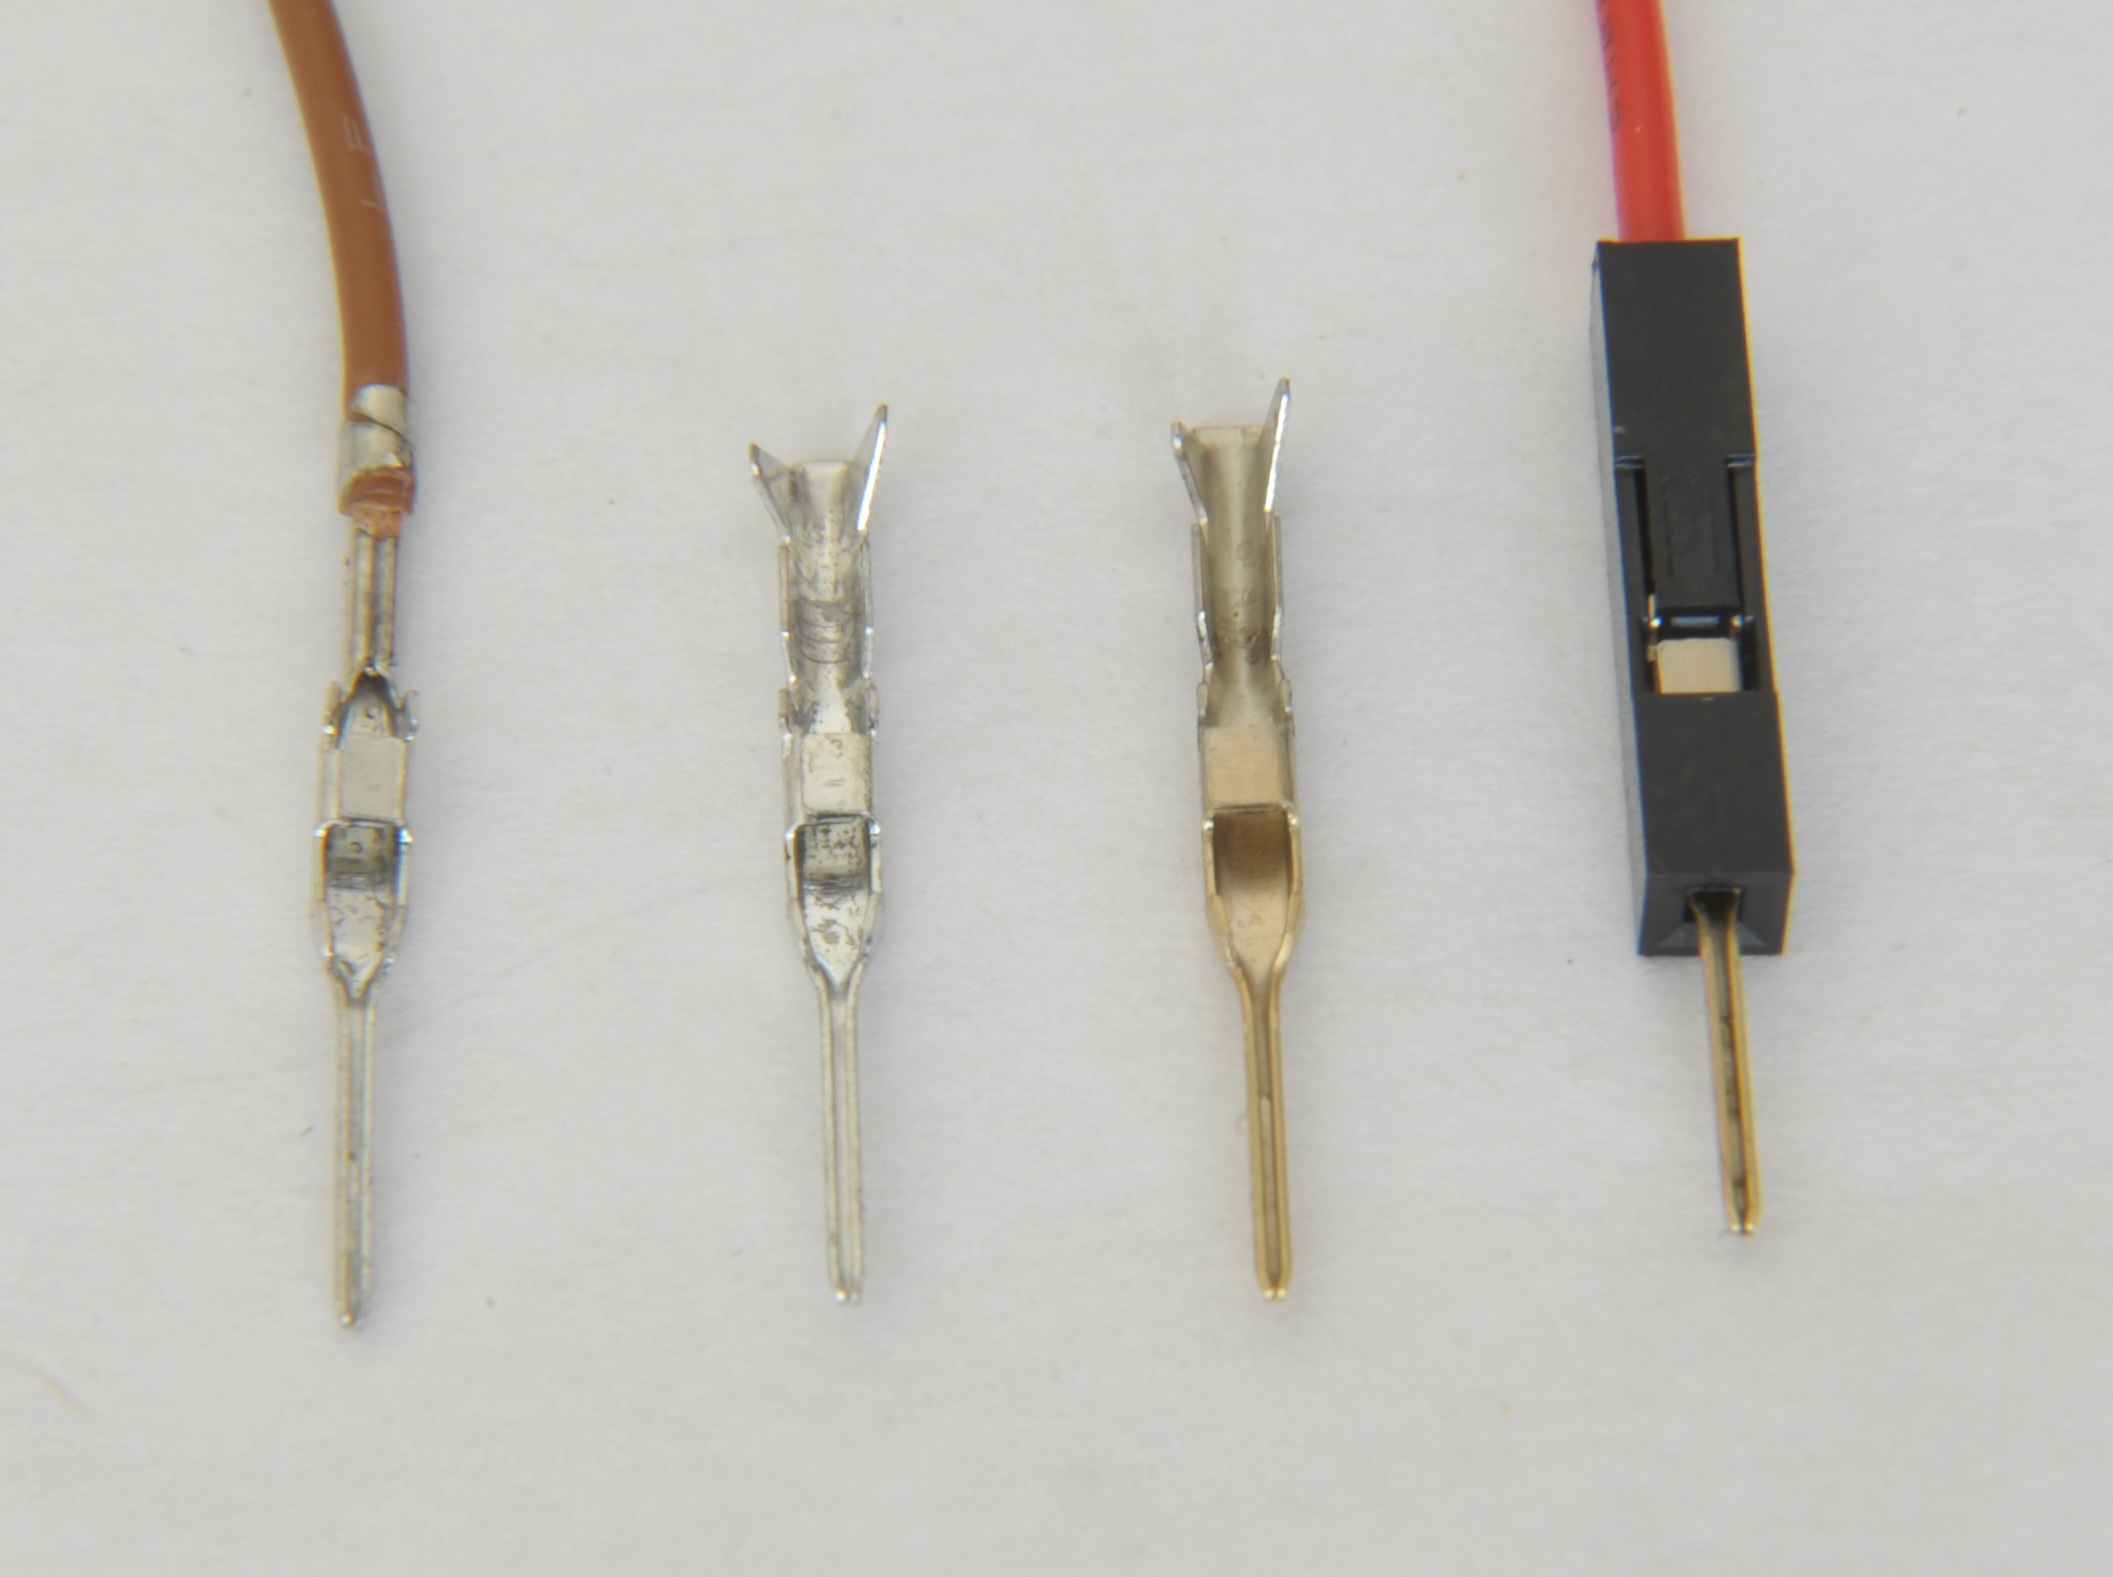 Common wire-to-board, wire-to-wire connectors, and crimp tools ...